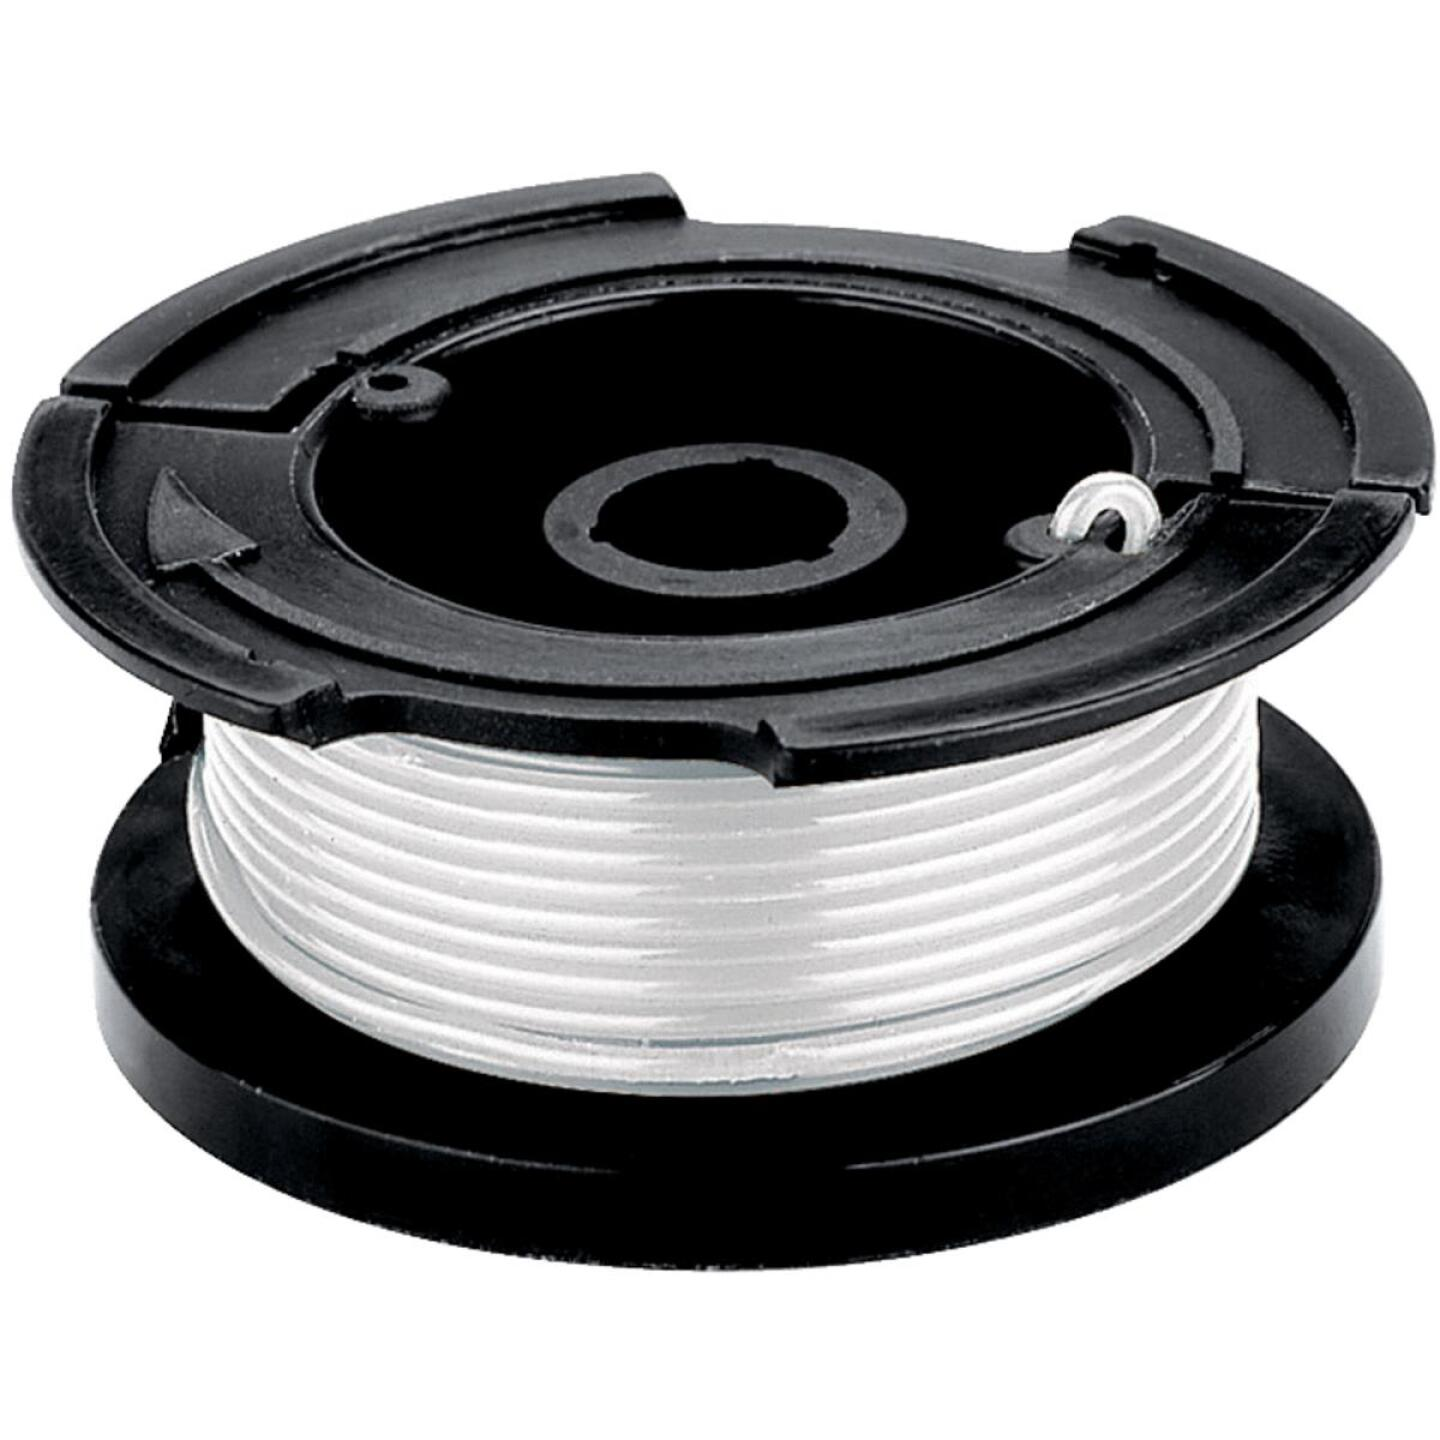 Black & Decker GrassHog 0.065 In. x 30 Ft. Trimmer Line Spool Image 1